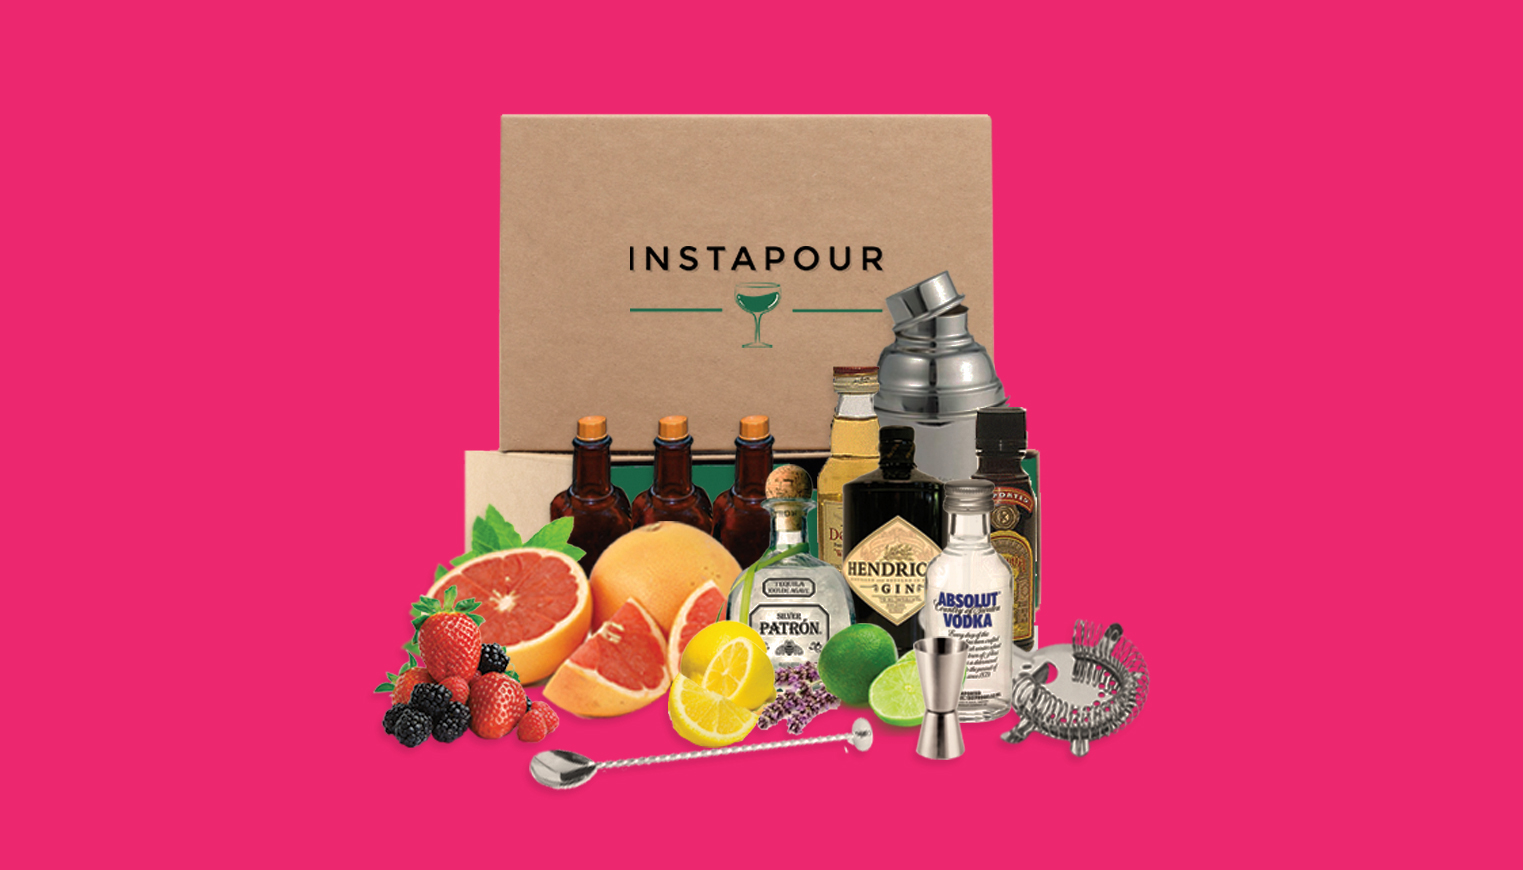 berlin-grey-creative-graphic-design-web-design-instapour-drinks-package-box